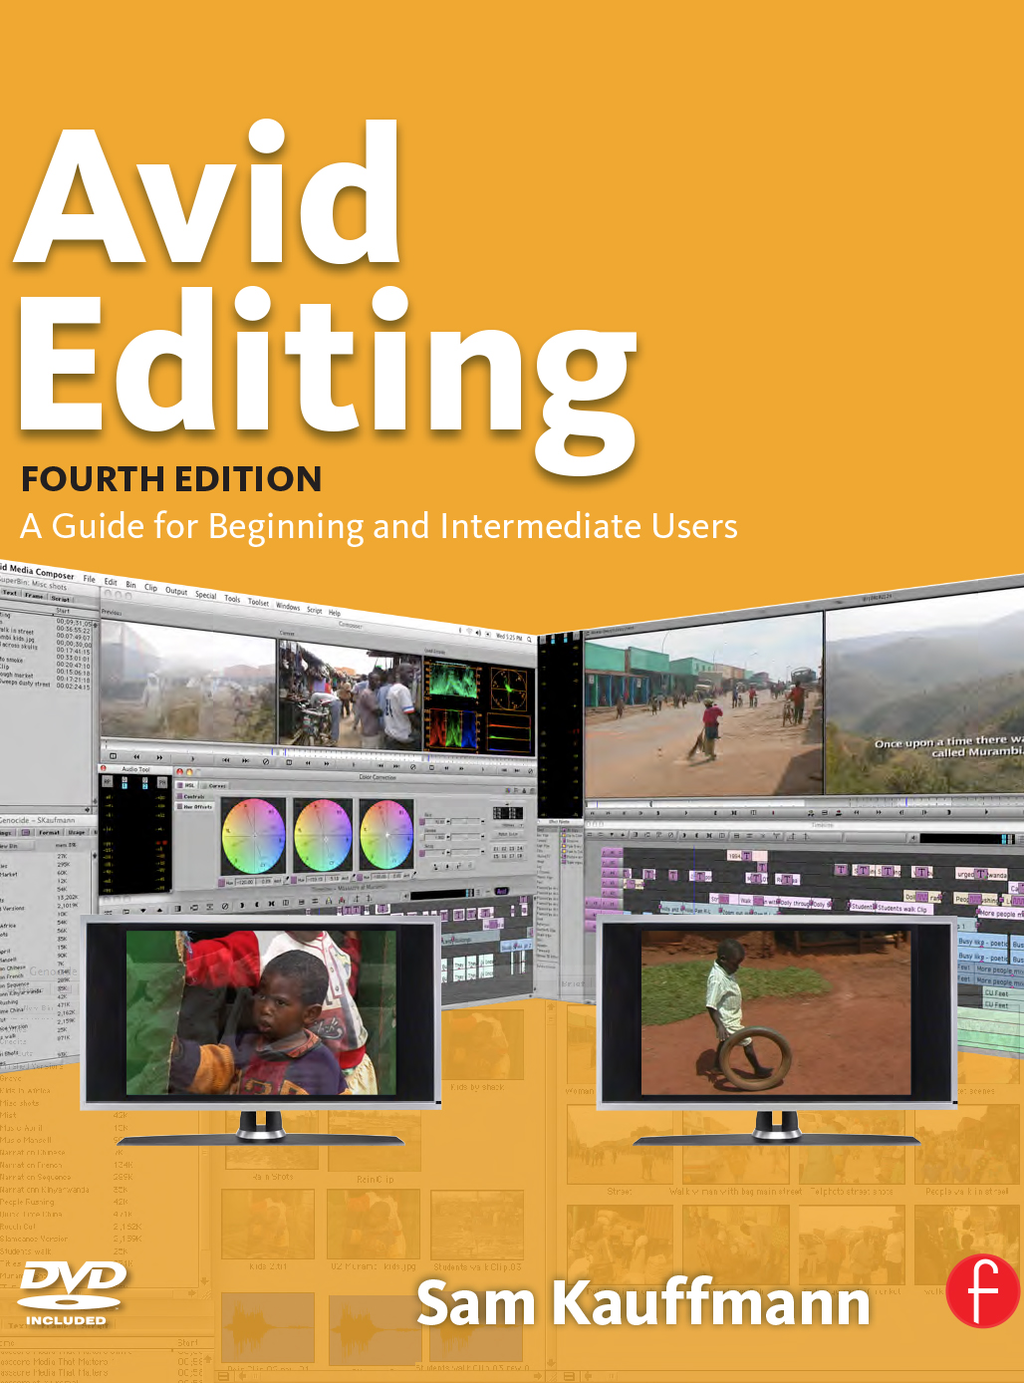 Avid Editing A Guide for Beginning and Intermediate Users